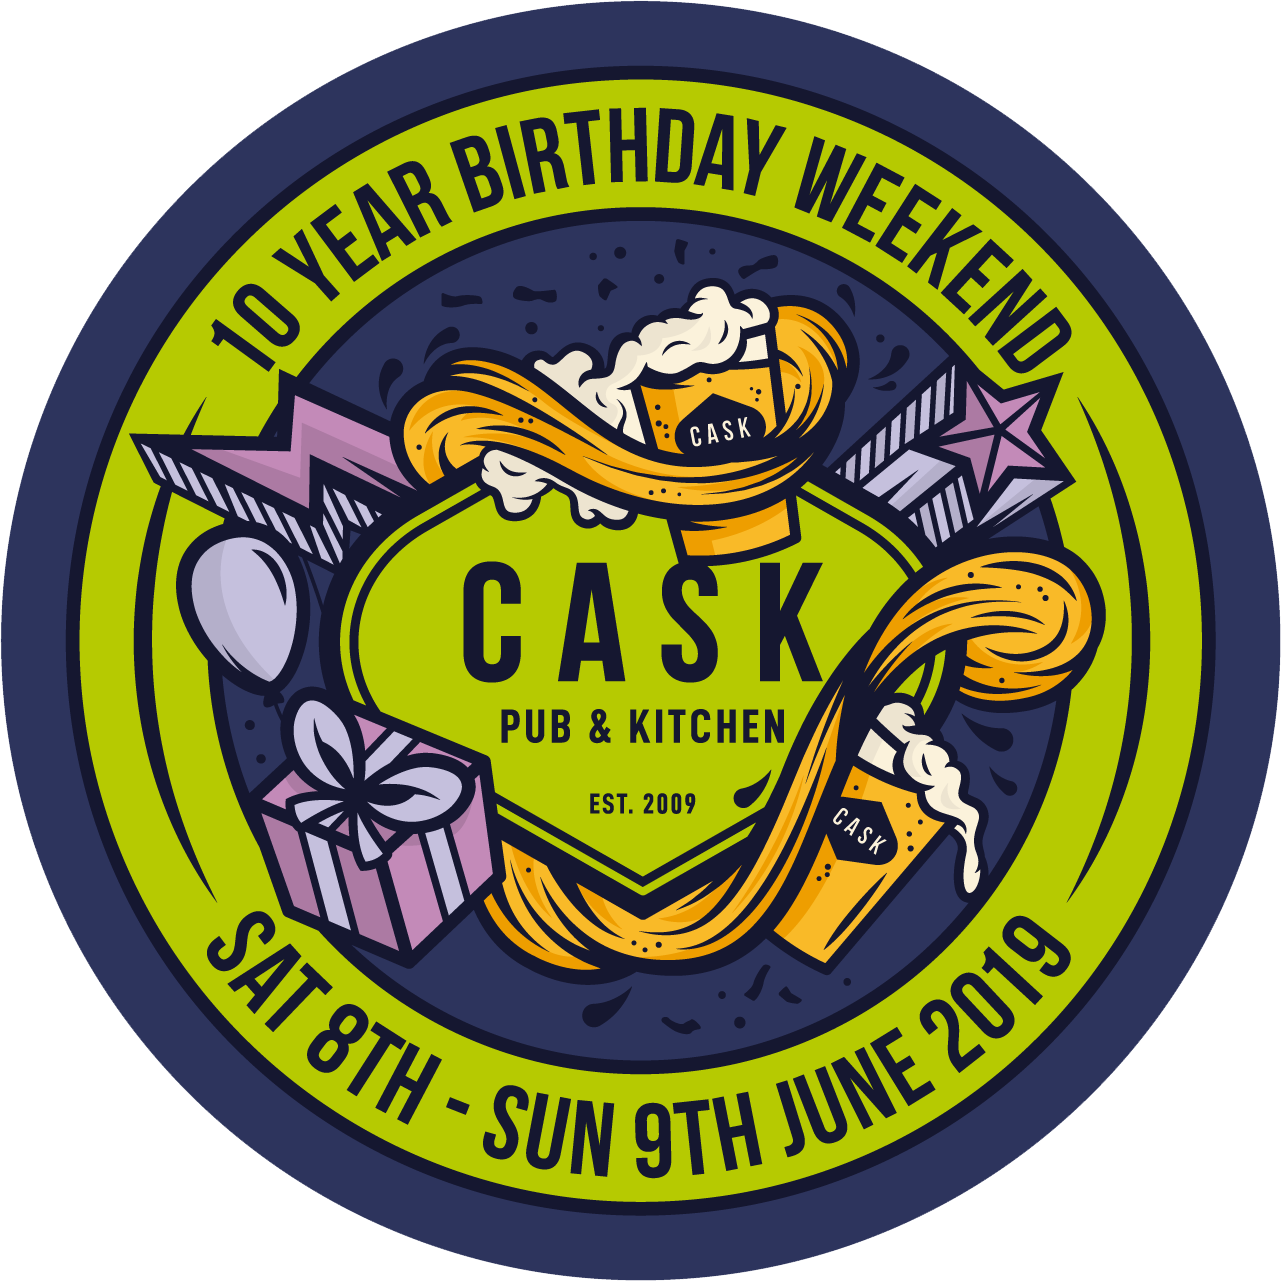 cask-pub-kitchen-10th-birthday-weekend.png